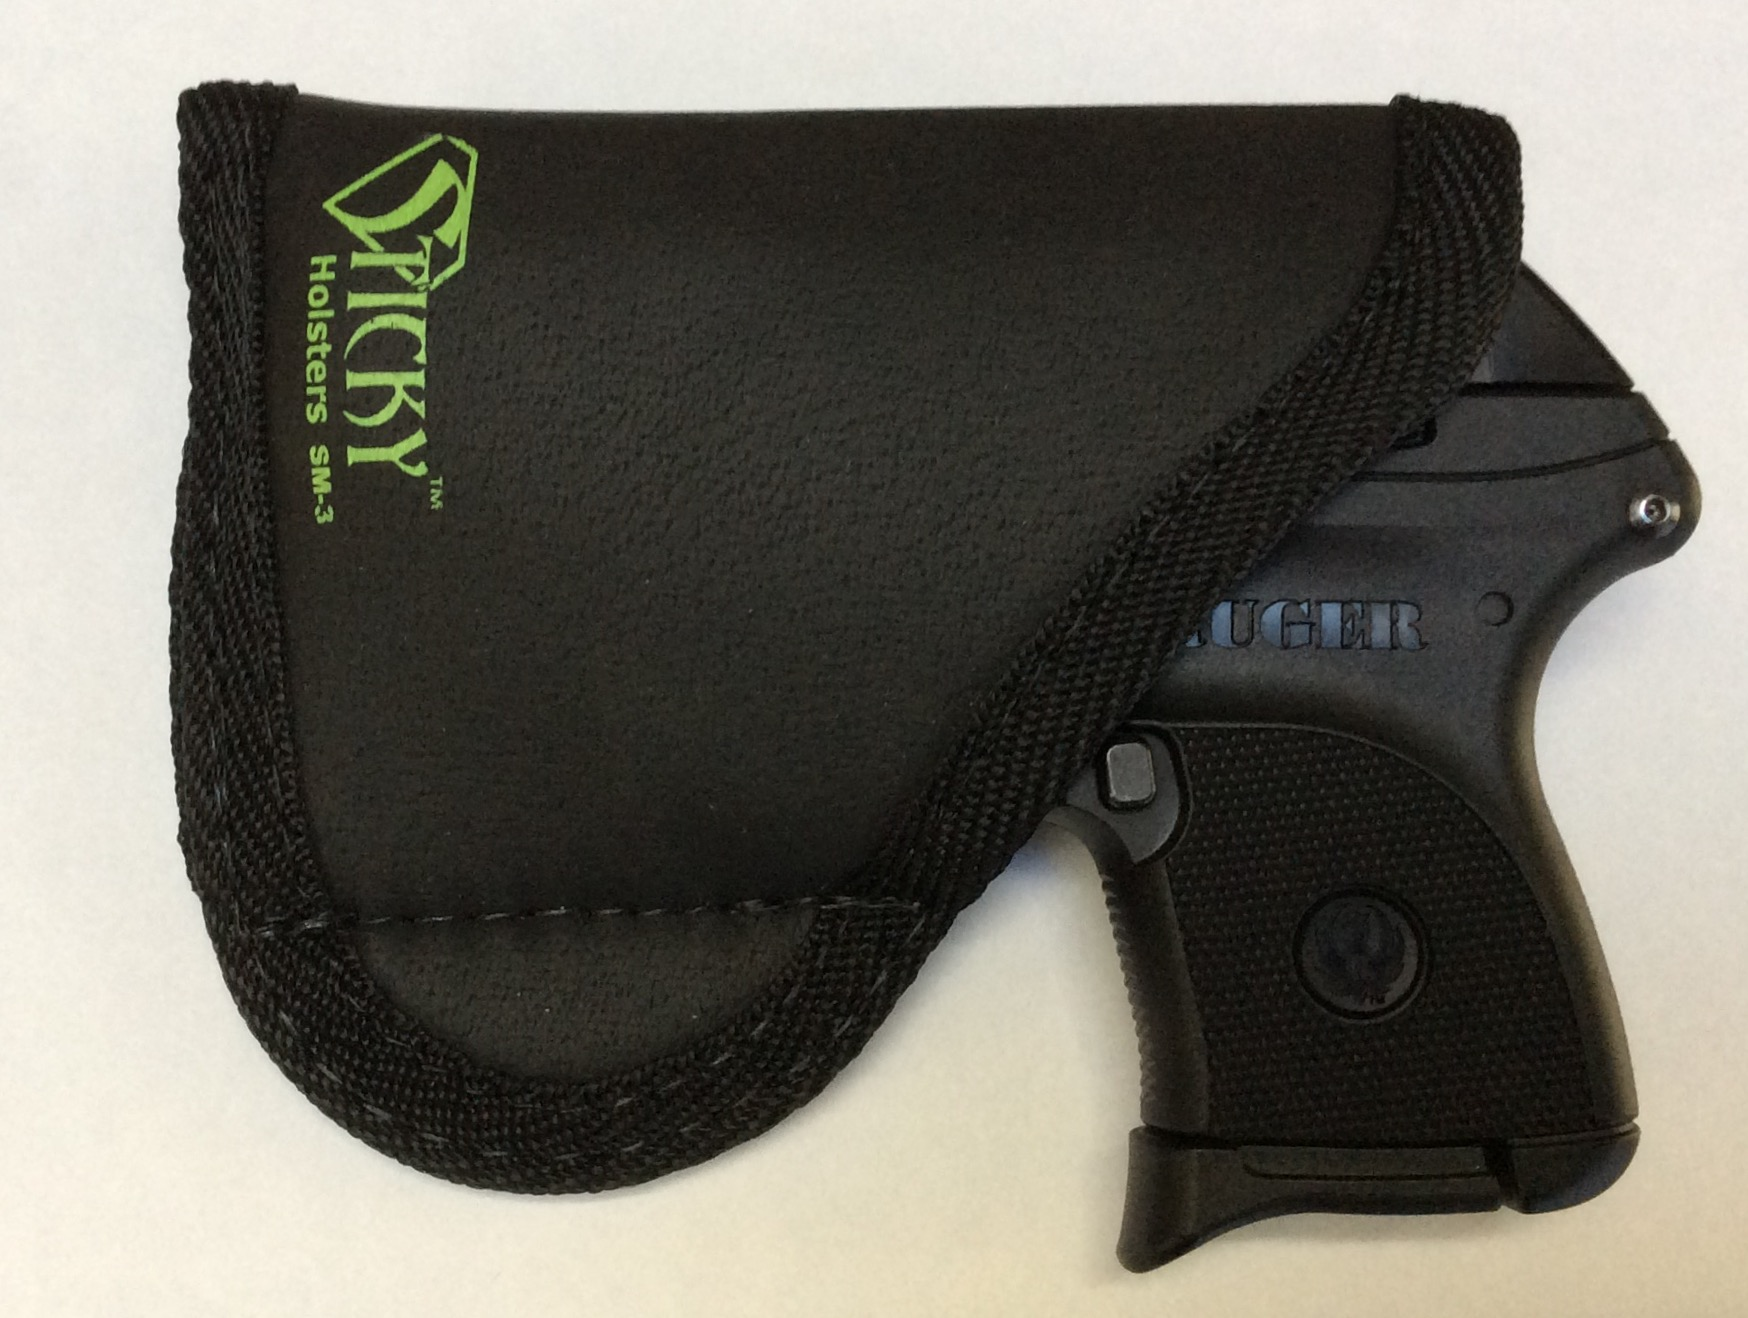 Sticky Holster (Remora) for Ruger LCP - Hank's Holster Review